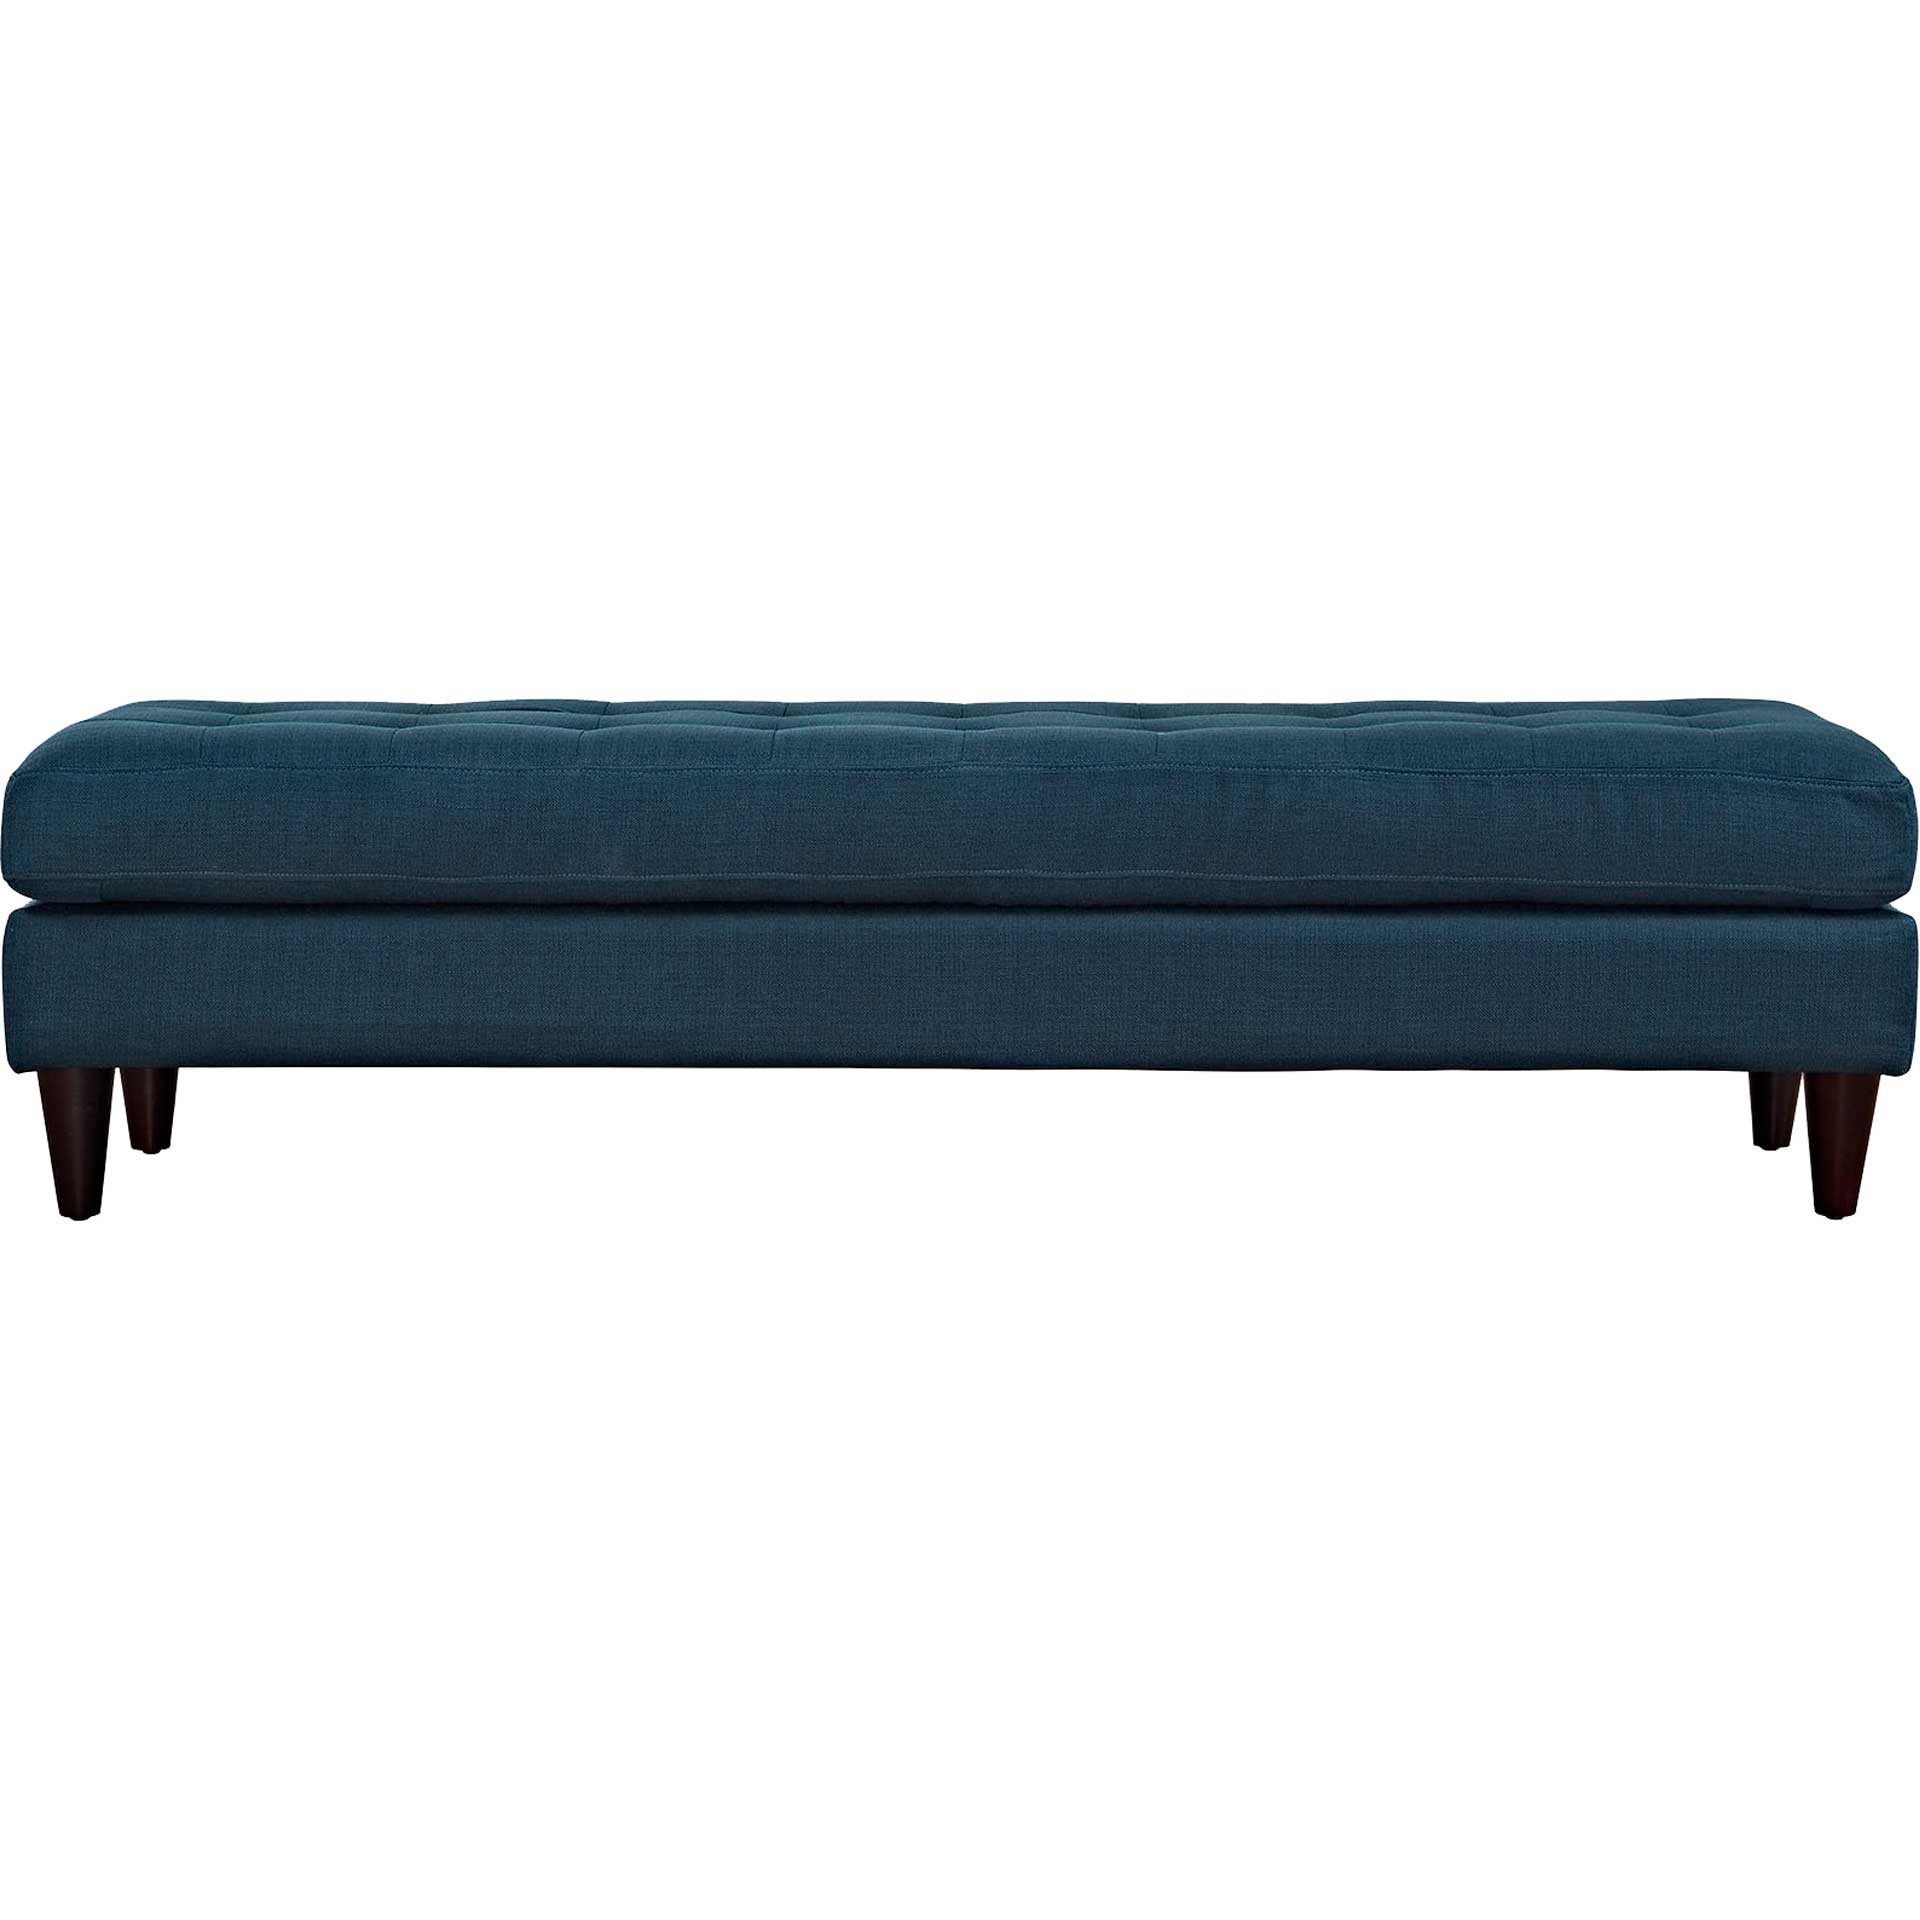 Era Upholstered Fabric Bench Azure